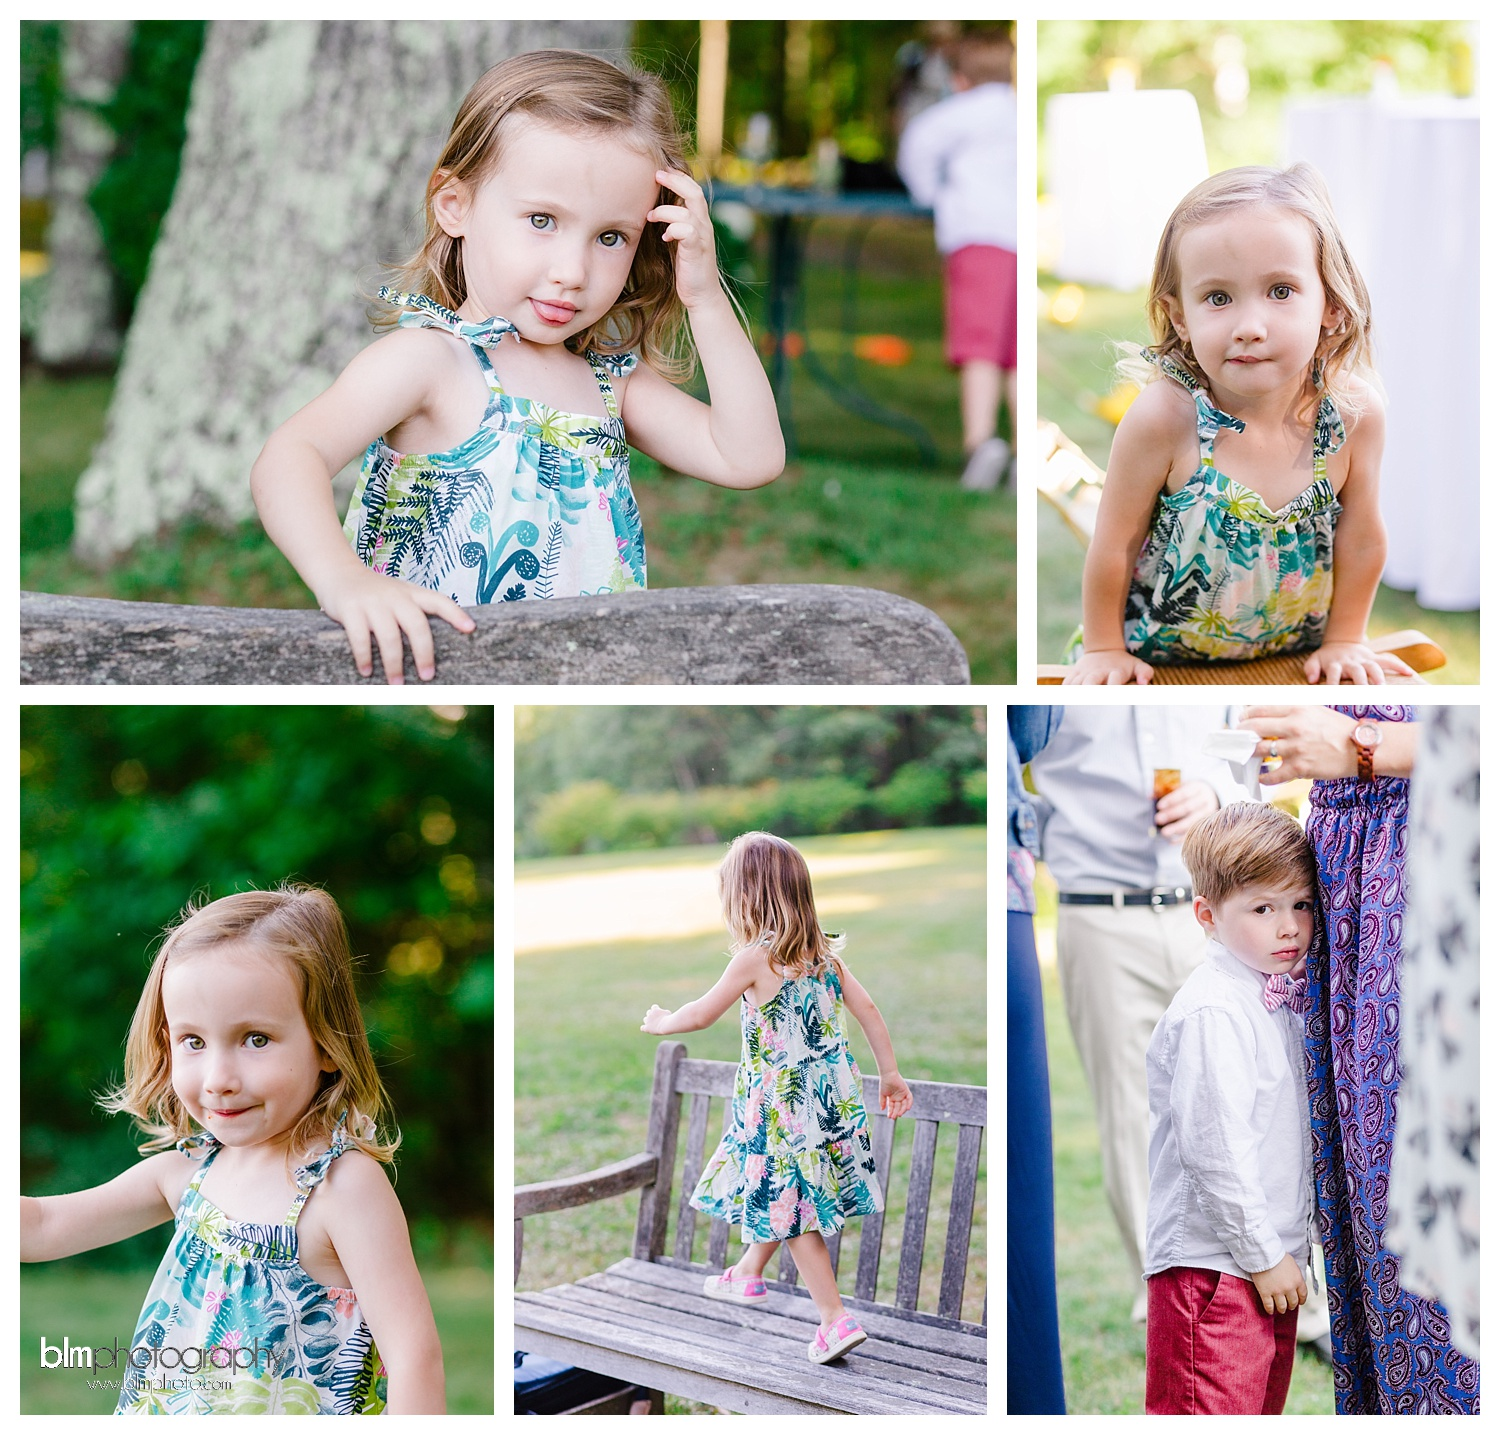 2017,20170729,87,91,Artistic,BLM,Candid,Creative,Dublin,Family Photography,Family party,Family photos,Home,Learned,Learned Rd,Learned Road,Martha Duffy,NH,NH Family Photographer,NH Wedding,Natural,Natural Light,Niles,Niles Family,Outdoor,Personal,Pet,Peterborough Wedding Photographer,Photo,Photographer,Photography,Photojournalistic,Portrait,Professional,Professional Wedding Photography,Rd,Road,USA,United States,Vivid,Wedding Photography,family reunion,www.blmphoto.com,©BLM Photography 2017,